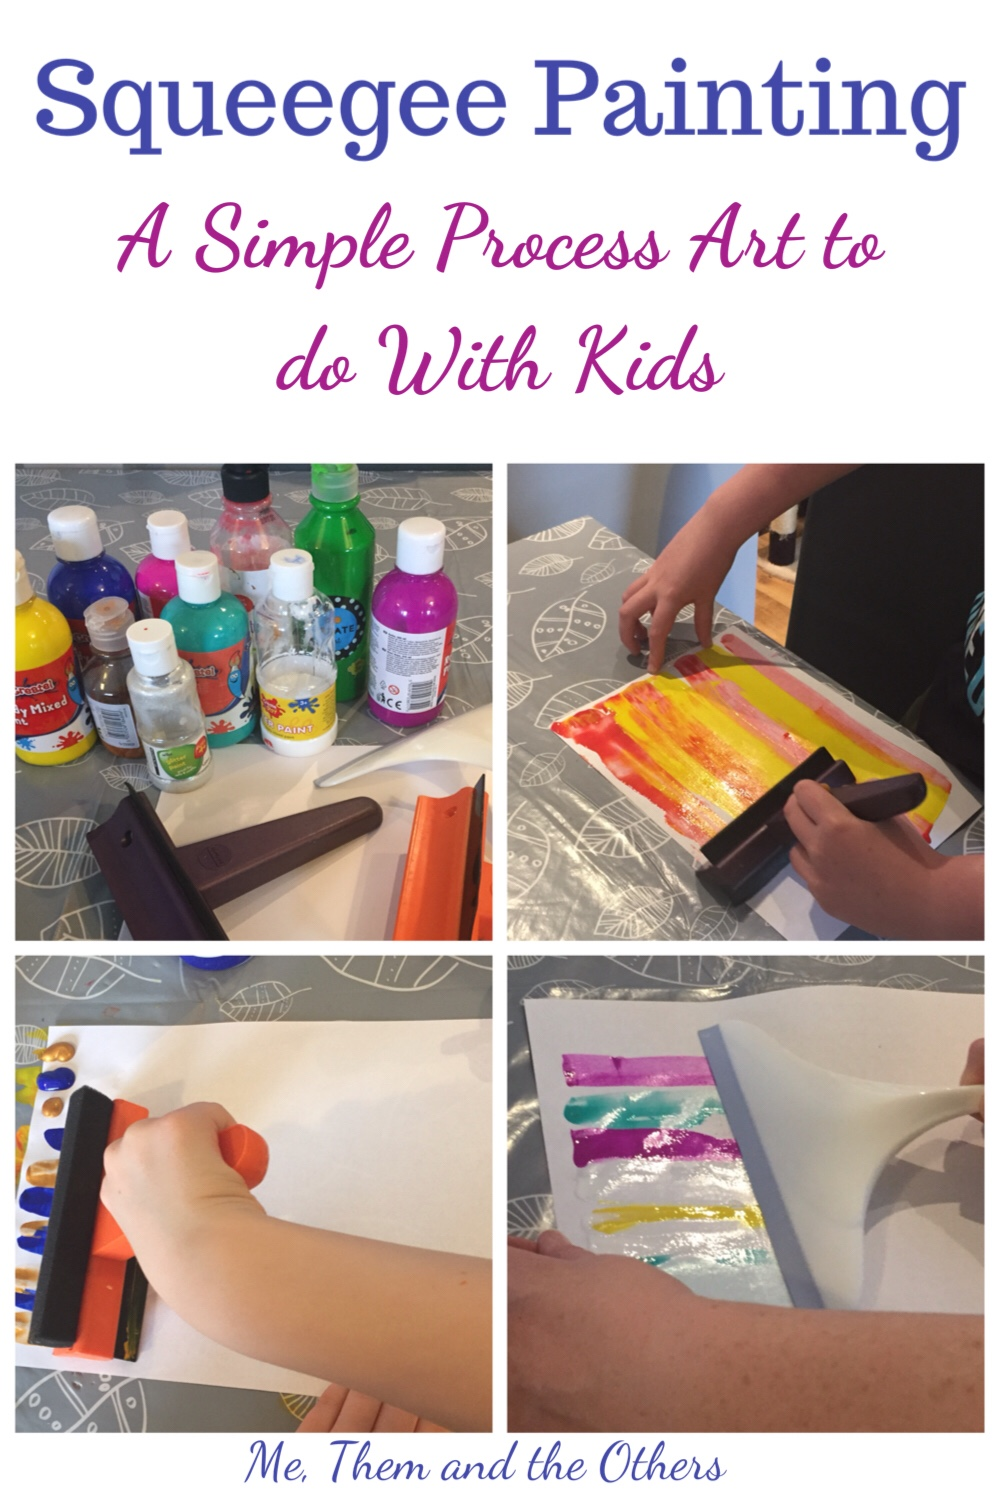 Squeegee painting a simple process art to do with kids